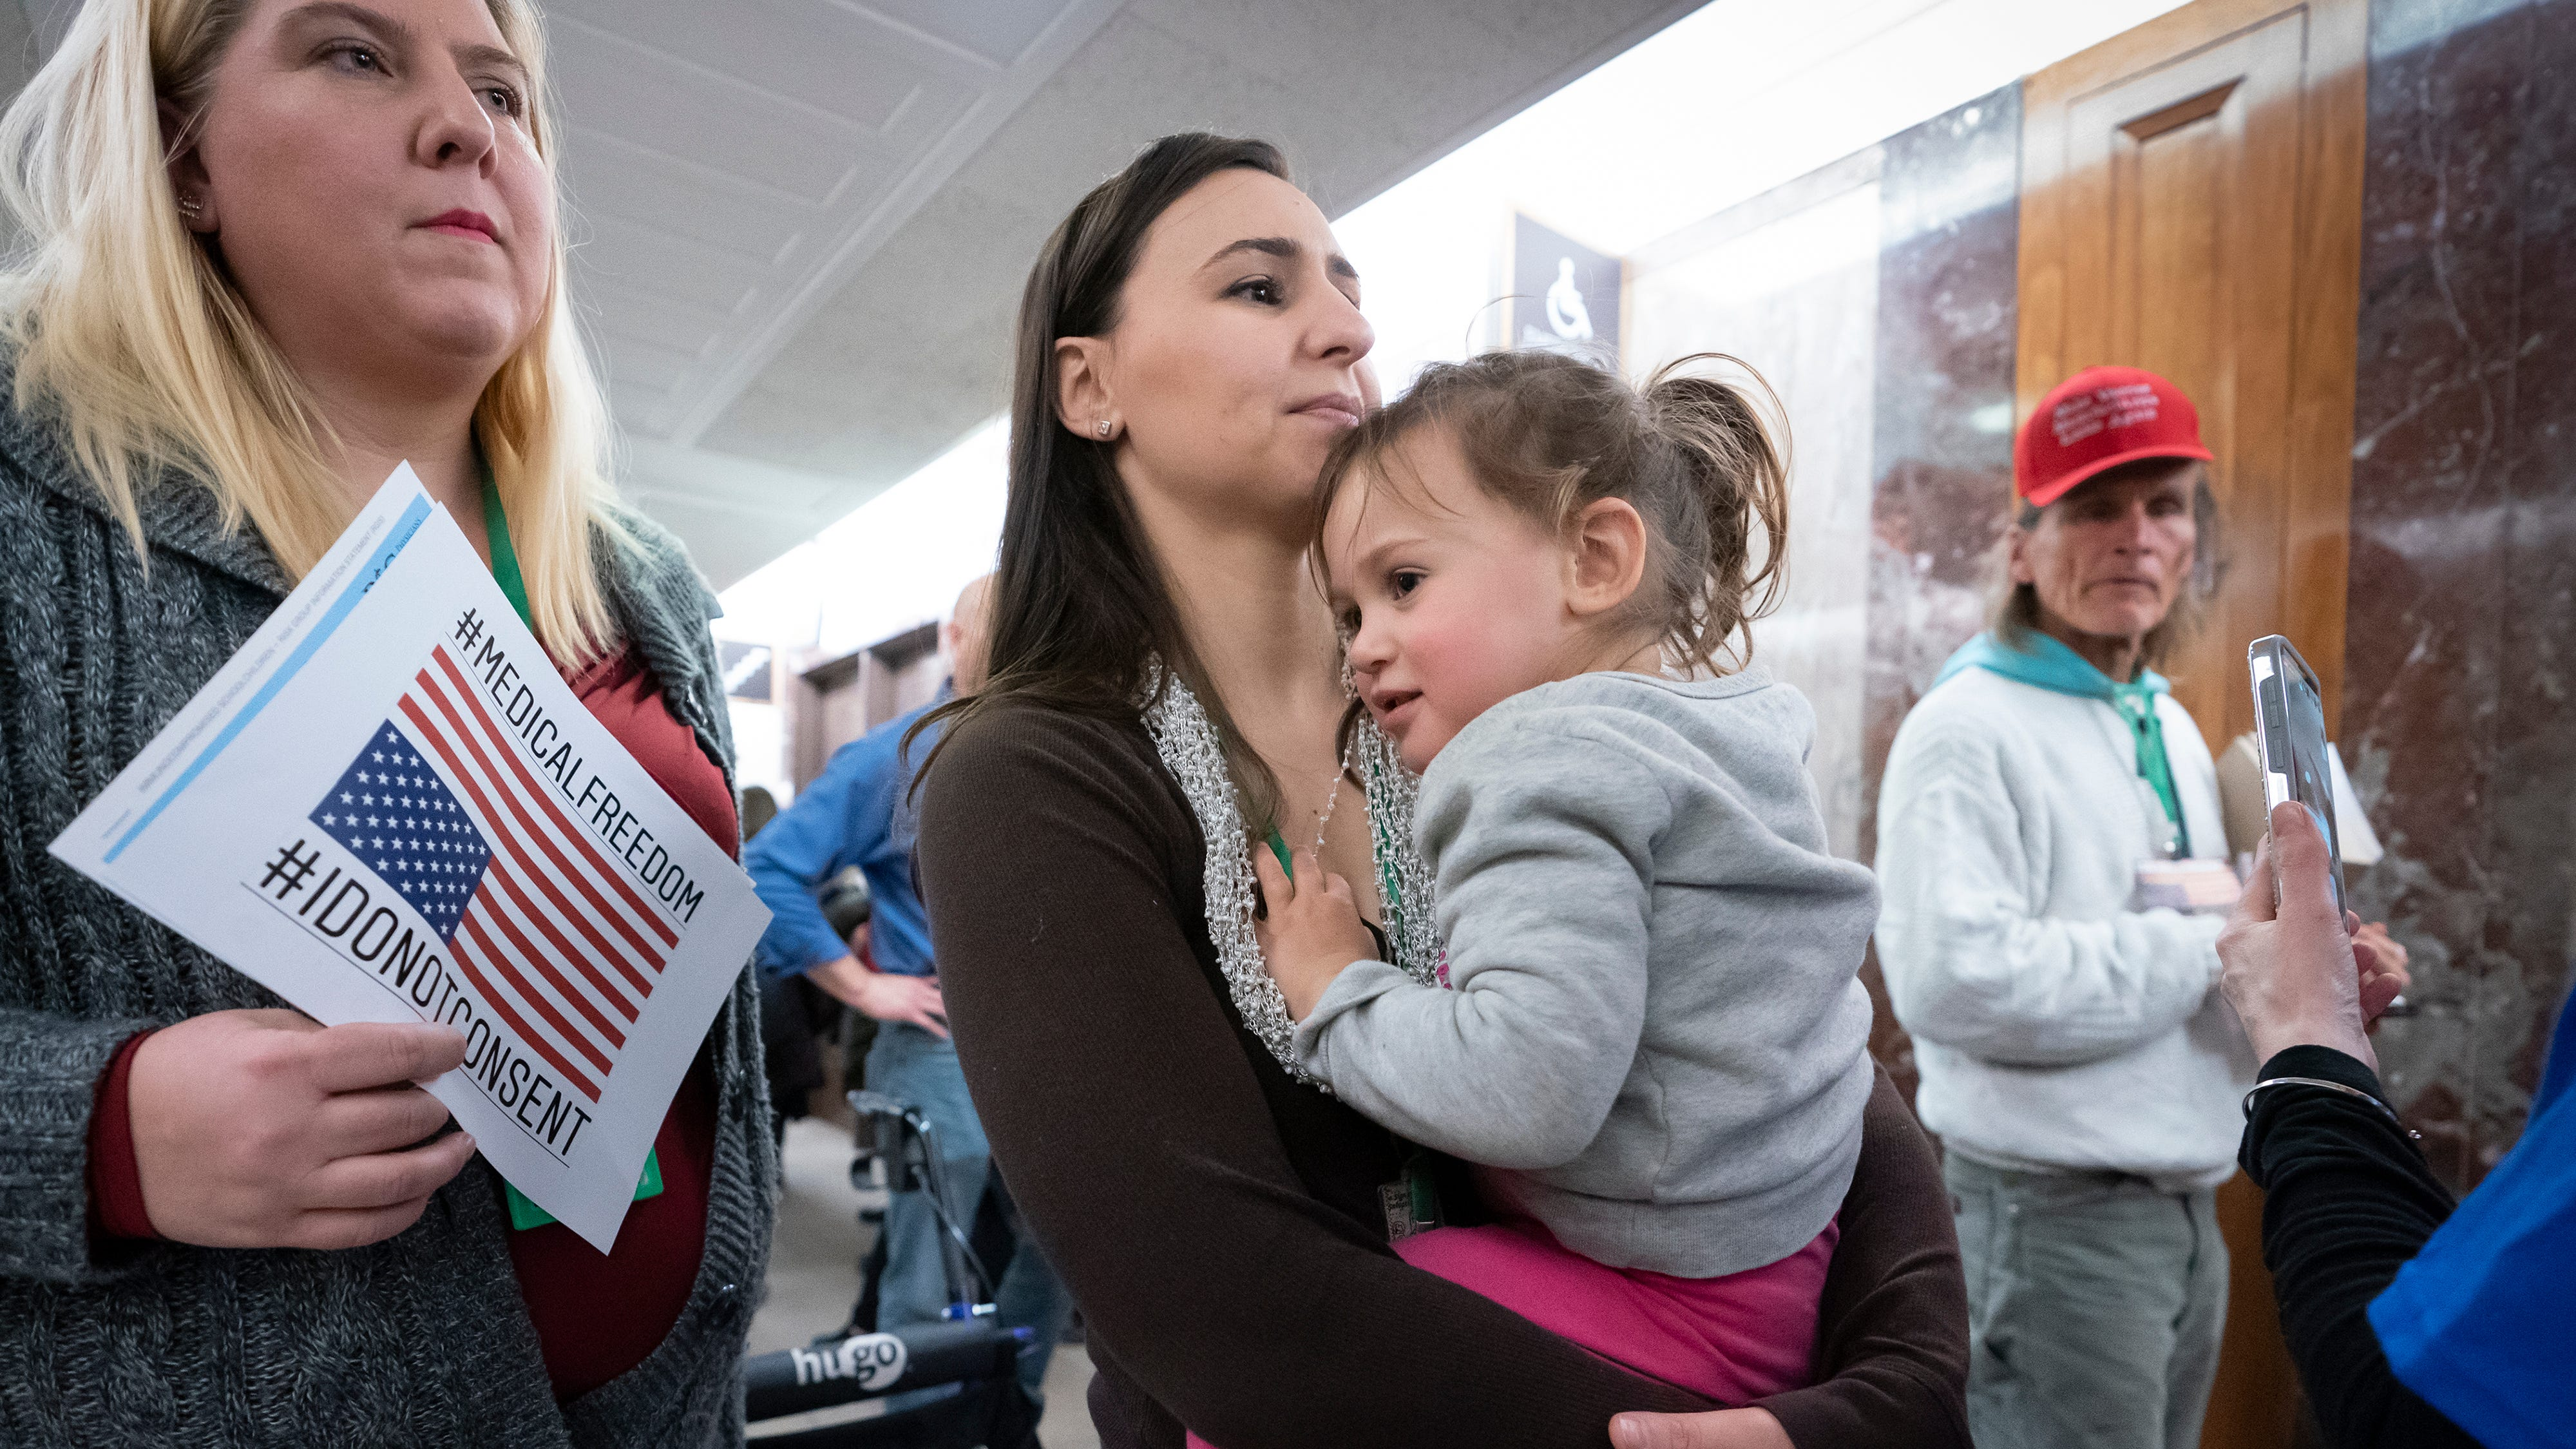 Sarah Myriam of New Jersey holds her daughter Aliyah, 2, as they join activists opposed to vaccinations outside a Senate Health, Education, Labor and Pensions Committee hearing on the safety of vaccines on March 5, 2019.